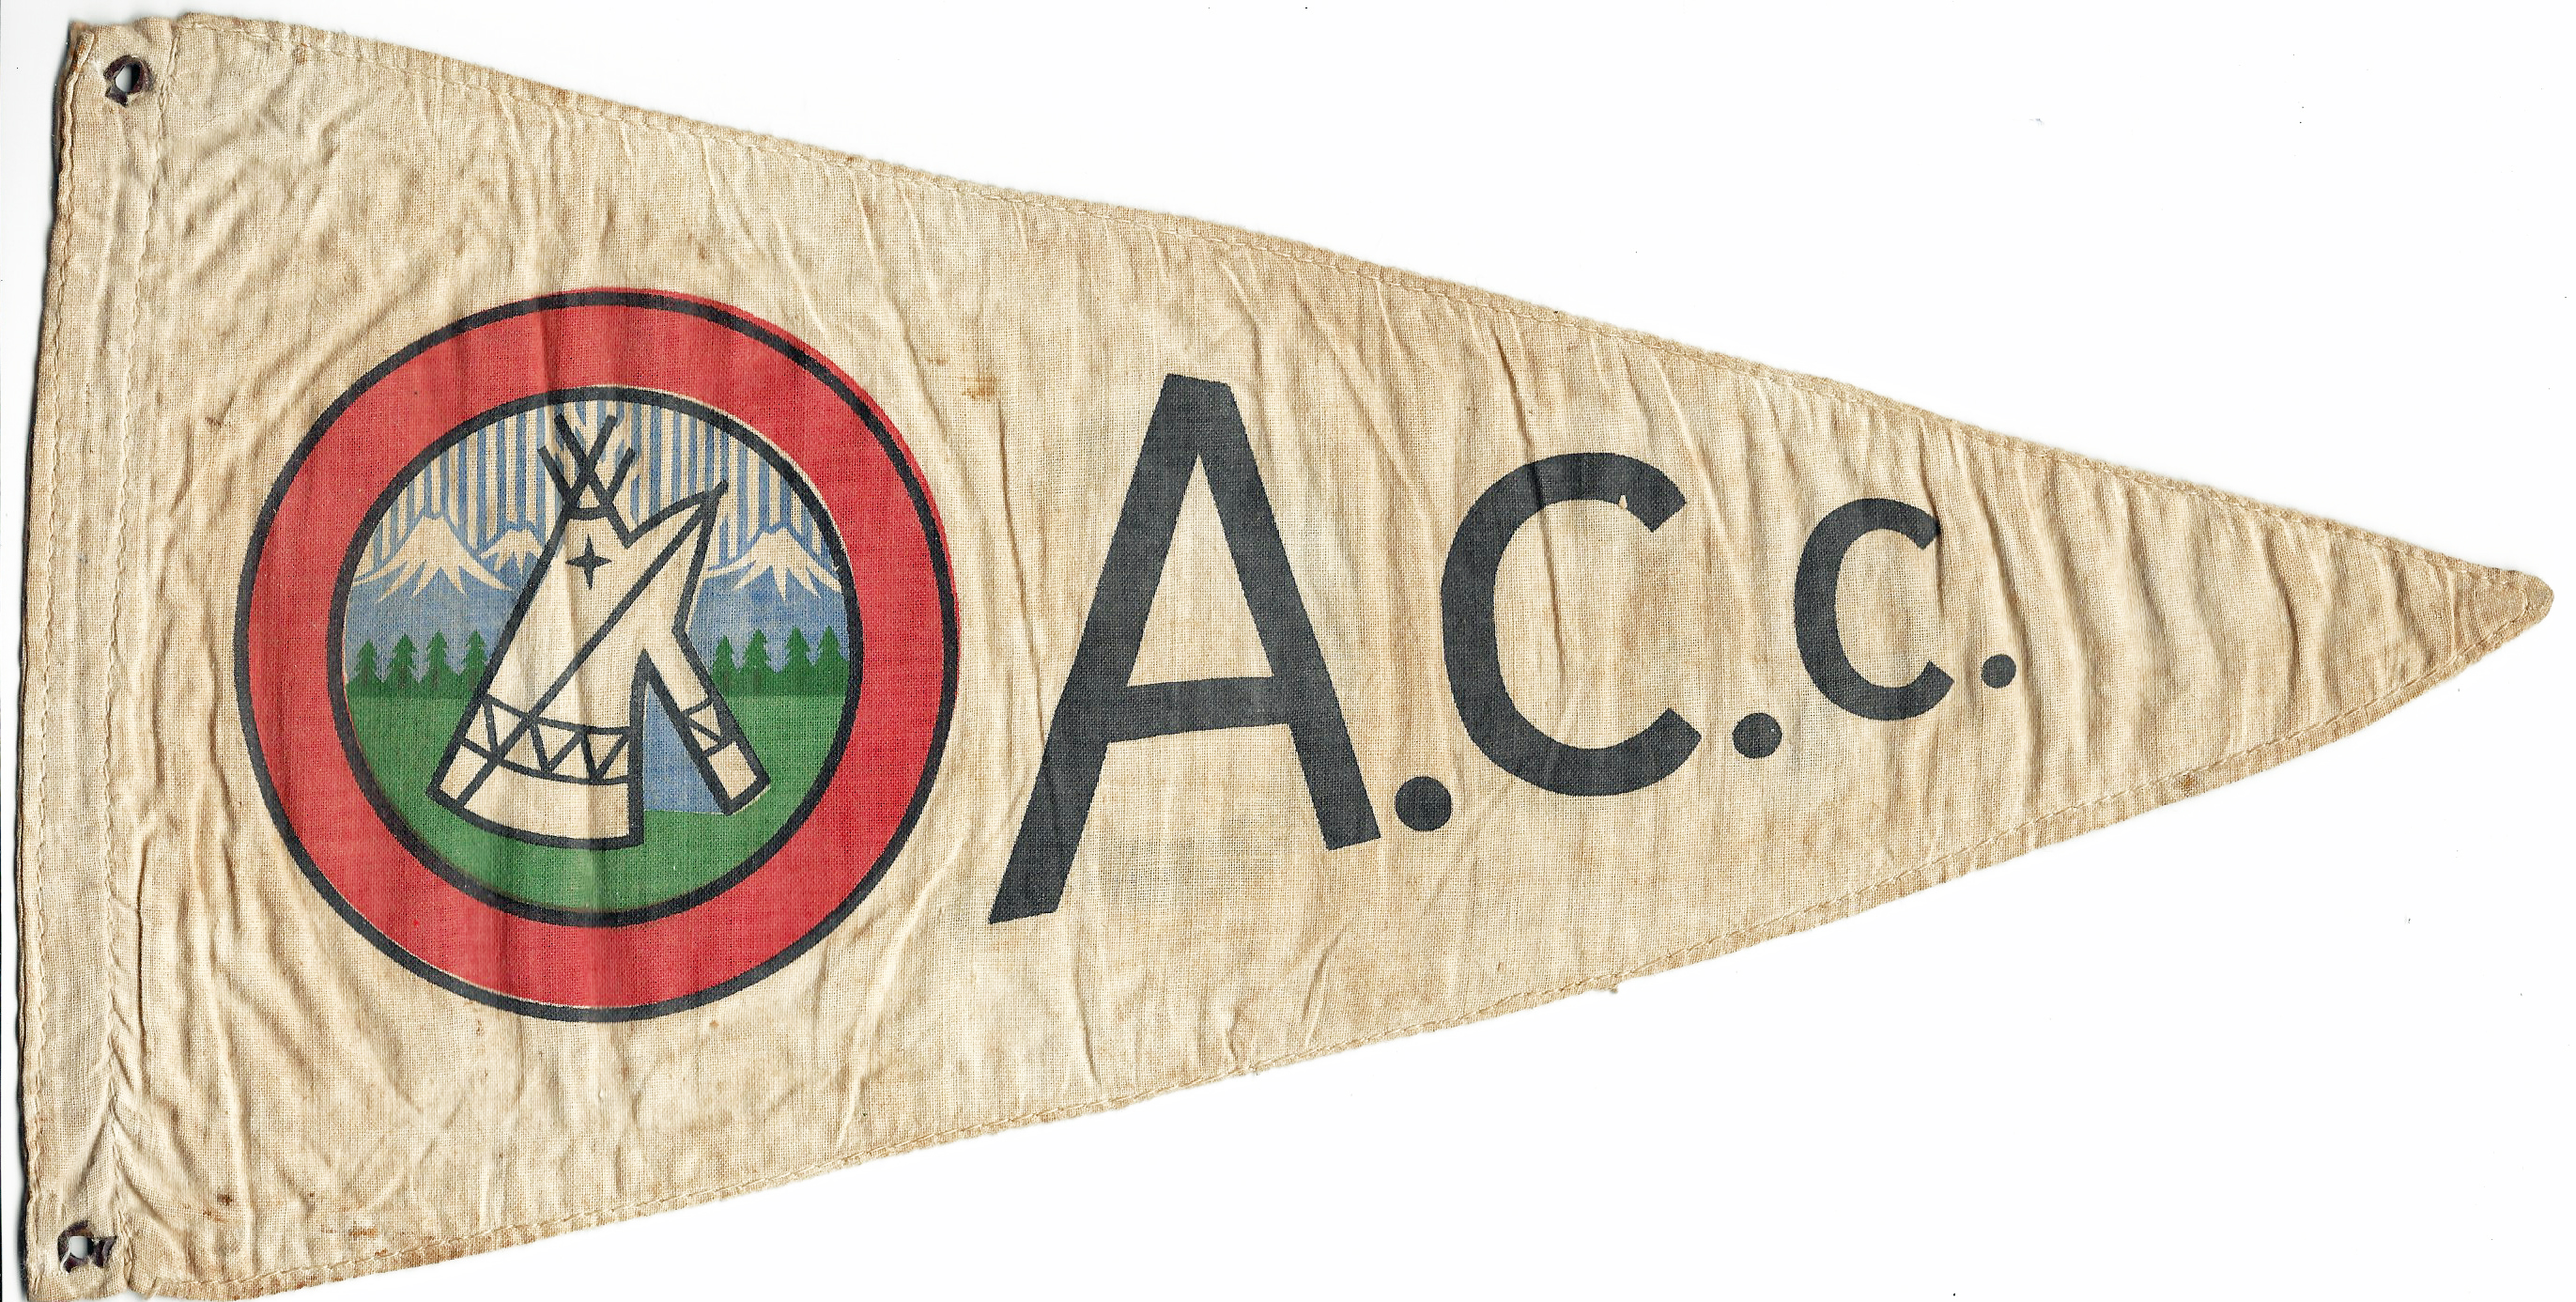 A rare survivor, A.C.C. flag that once fluttered gaily from the apex of a club members tent